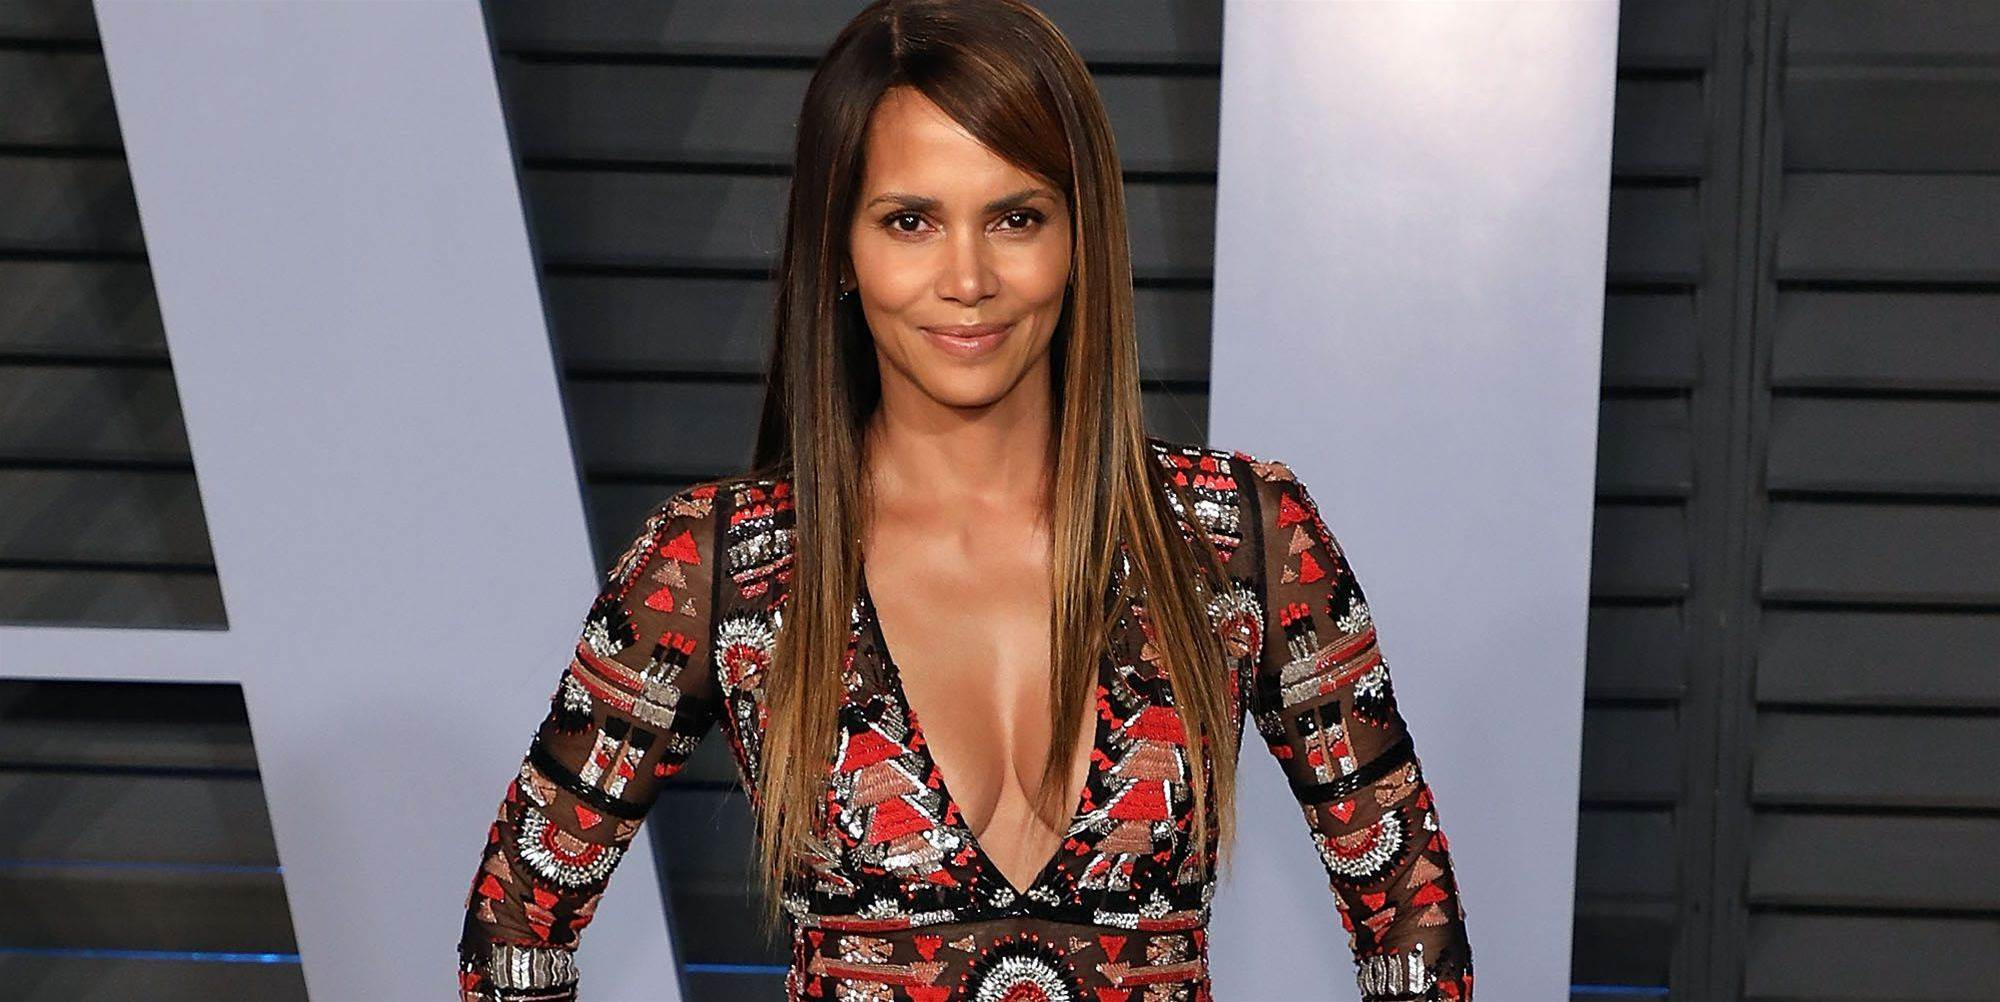 Halle Berry Reveals How She Has the Body of a 25-Year-Old